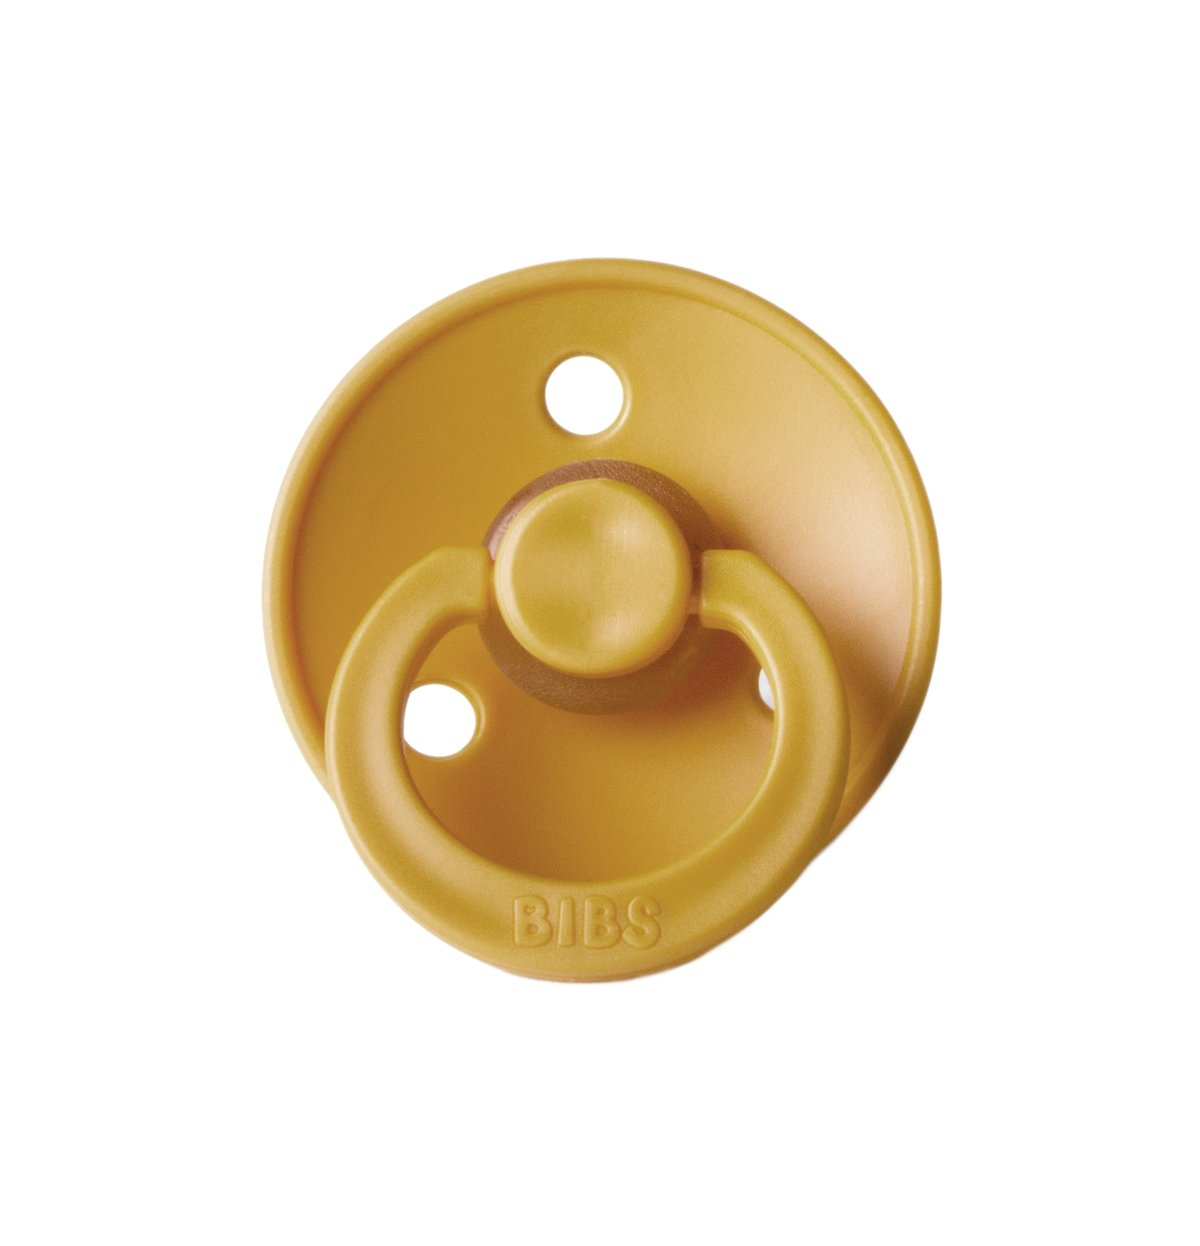 Bibs Pacifier | Mustard - The Yellow Canary